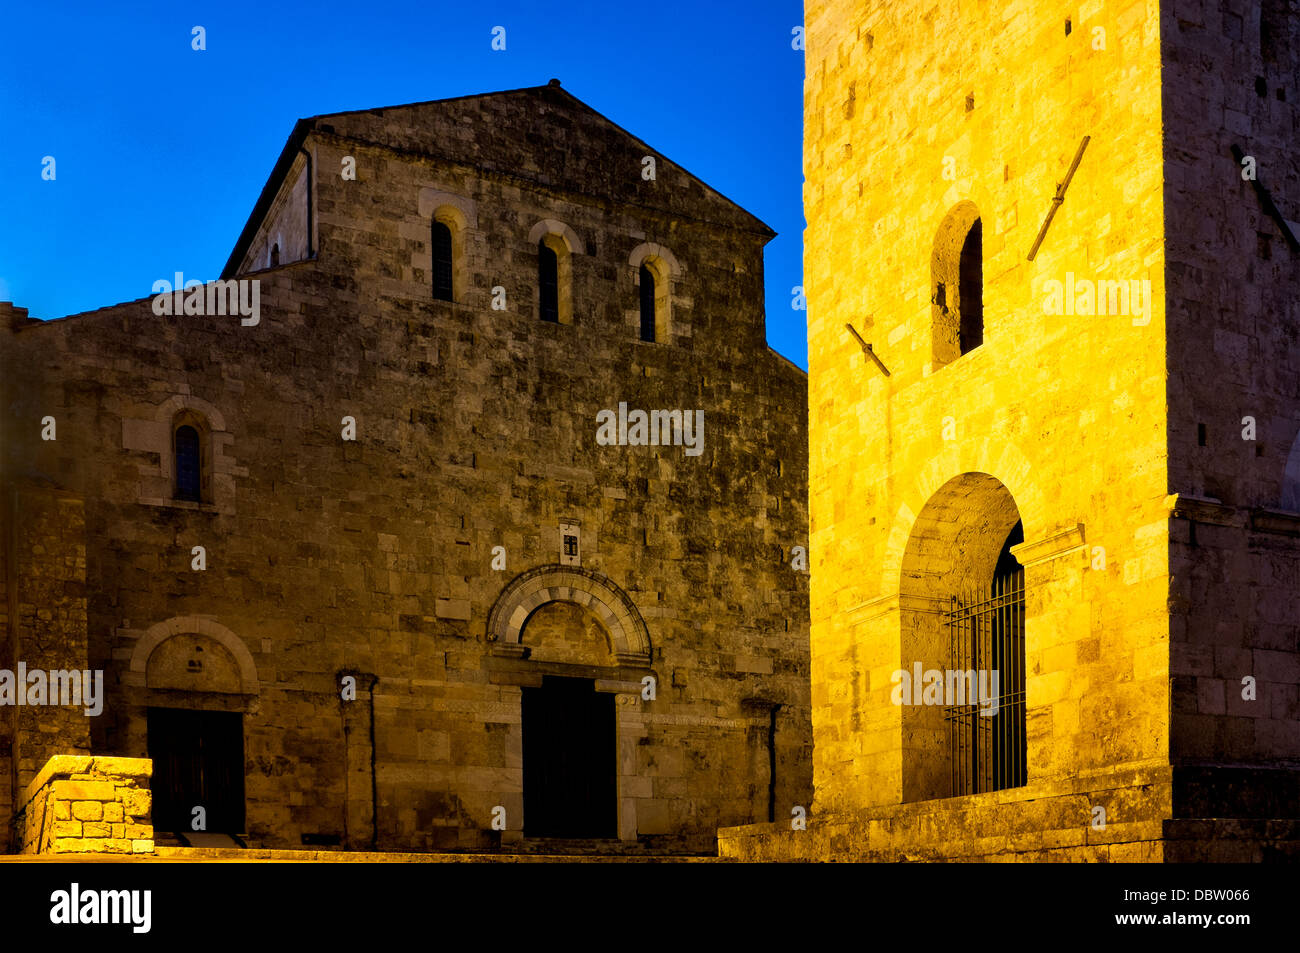 Facade of the Cathedral of Santa Maria, Anagni, Italy - Stock Image